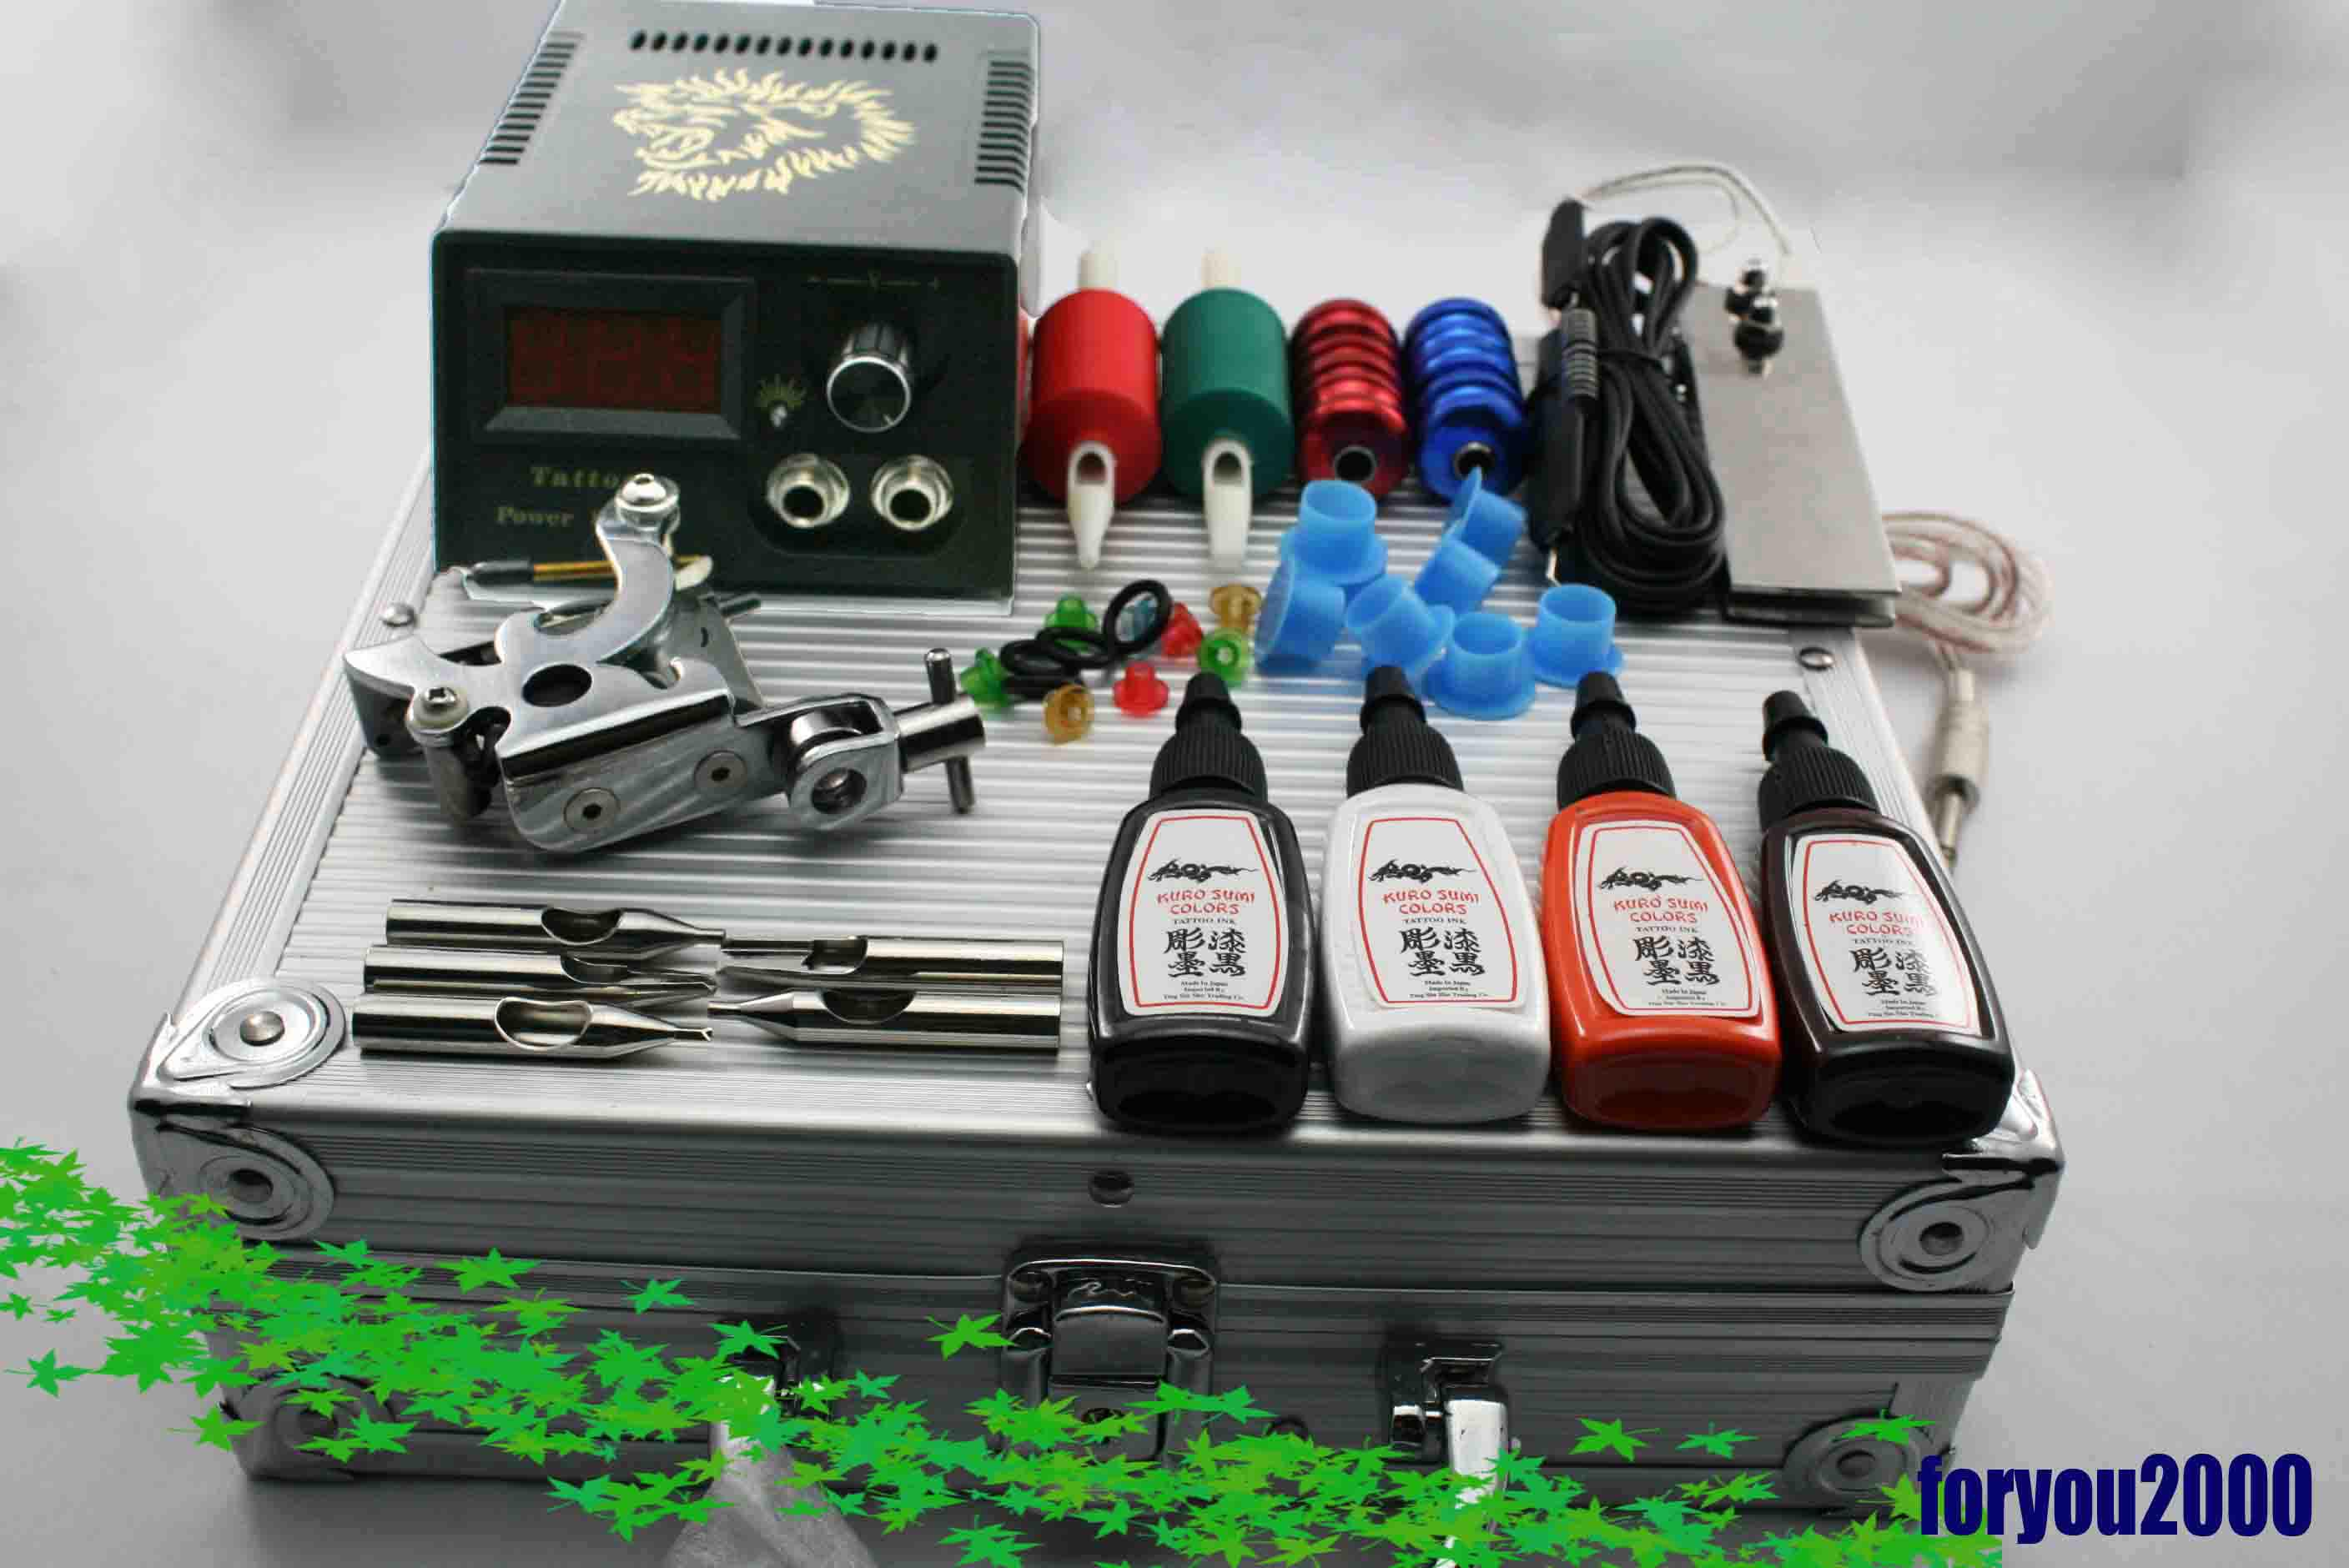 Best quality one machine tattoo kit digital power supply for Supplies for tattooing